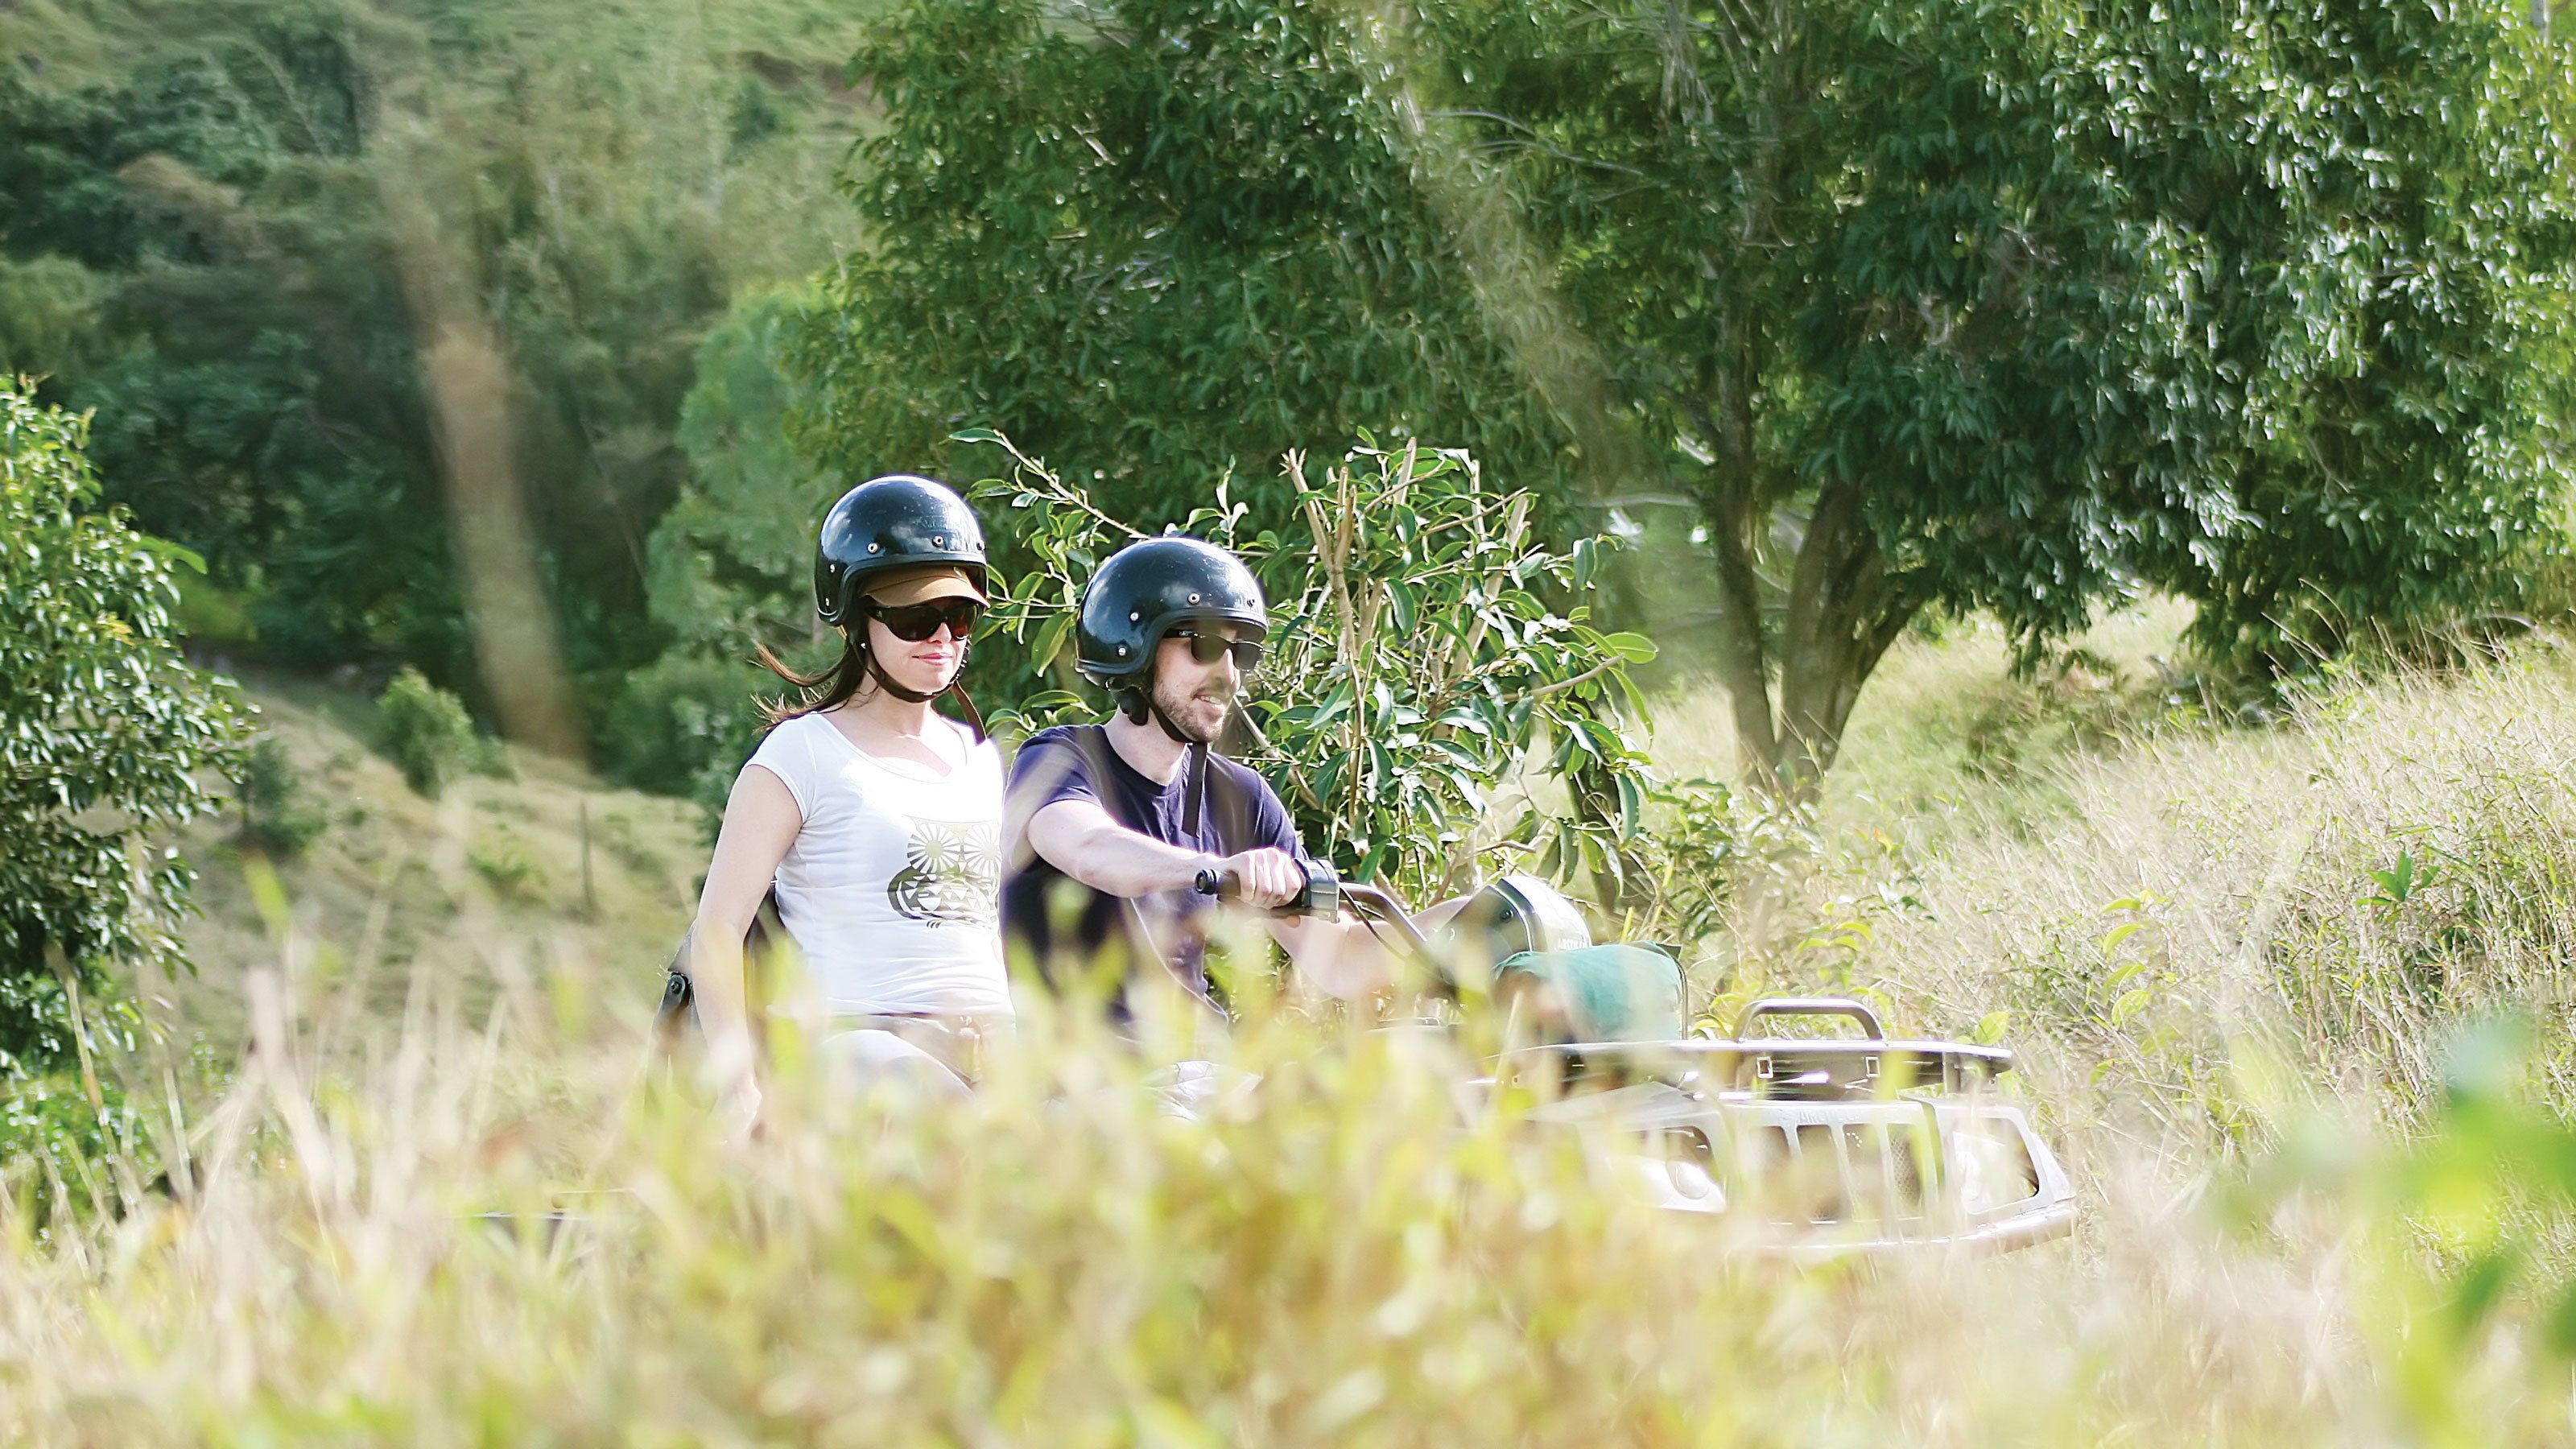 quad bikers trekking through tall grass at the Frederica Nature Reserve